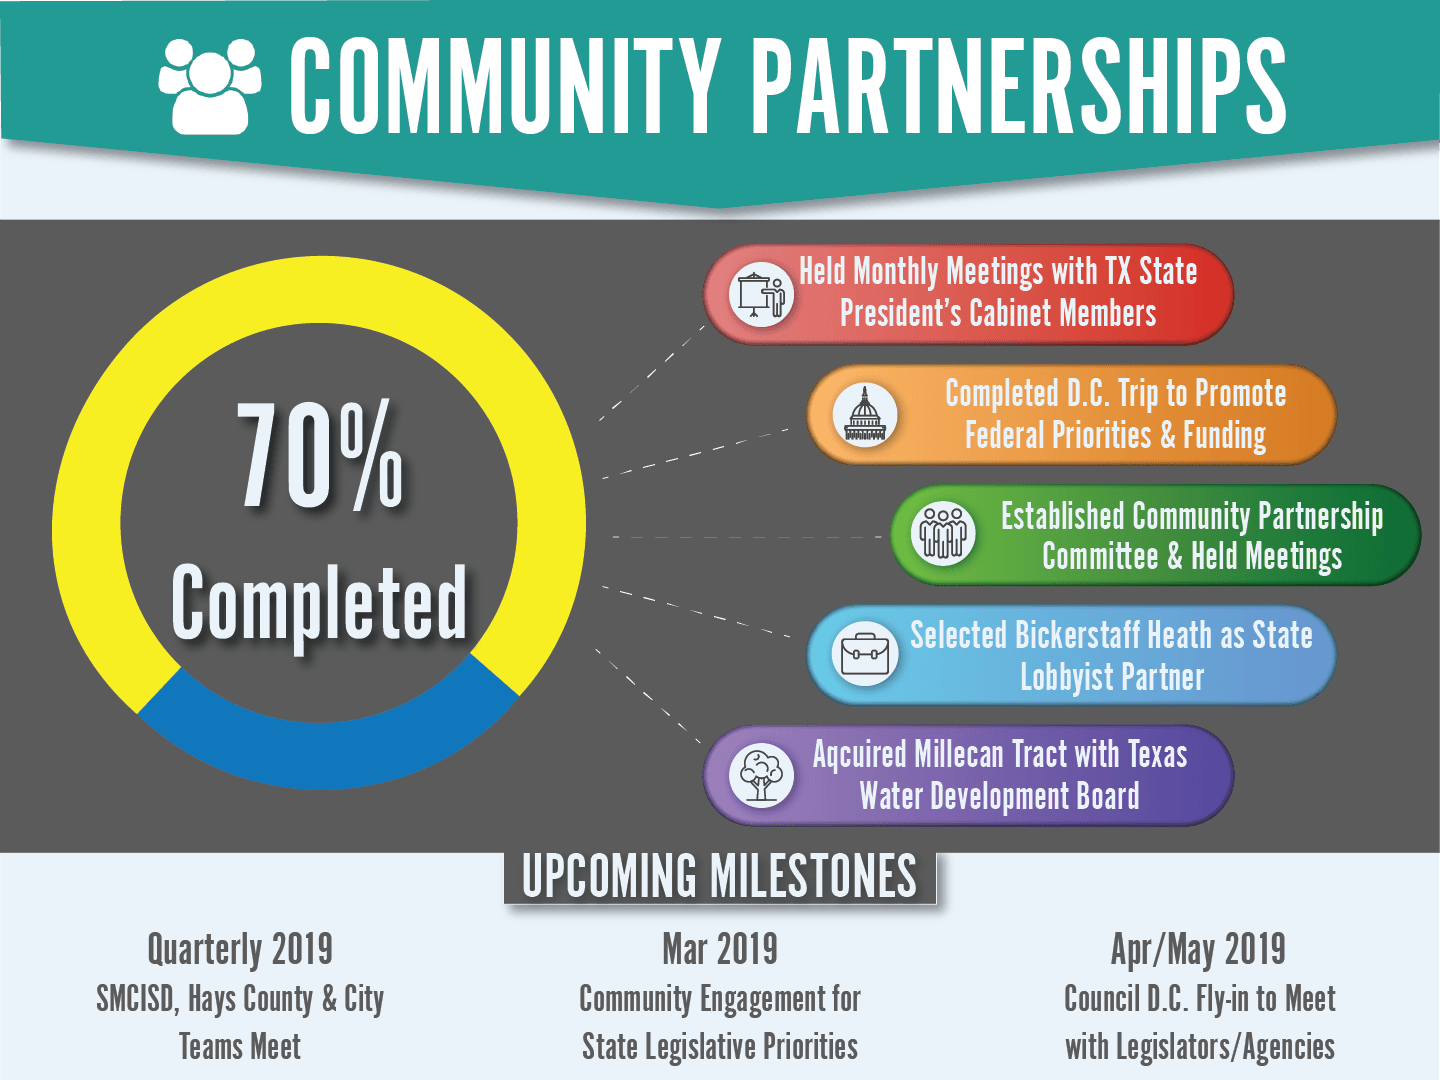 Community Partnerships Dashboard showing a 70% Completion Rate